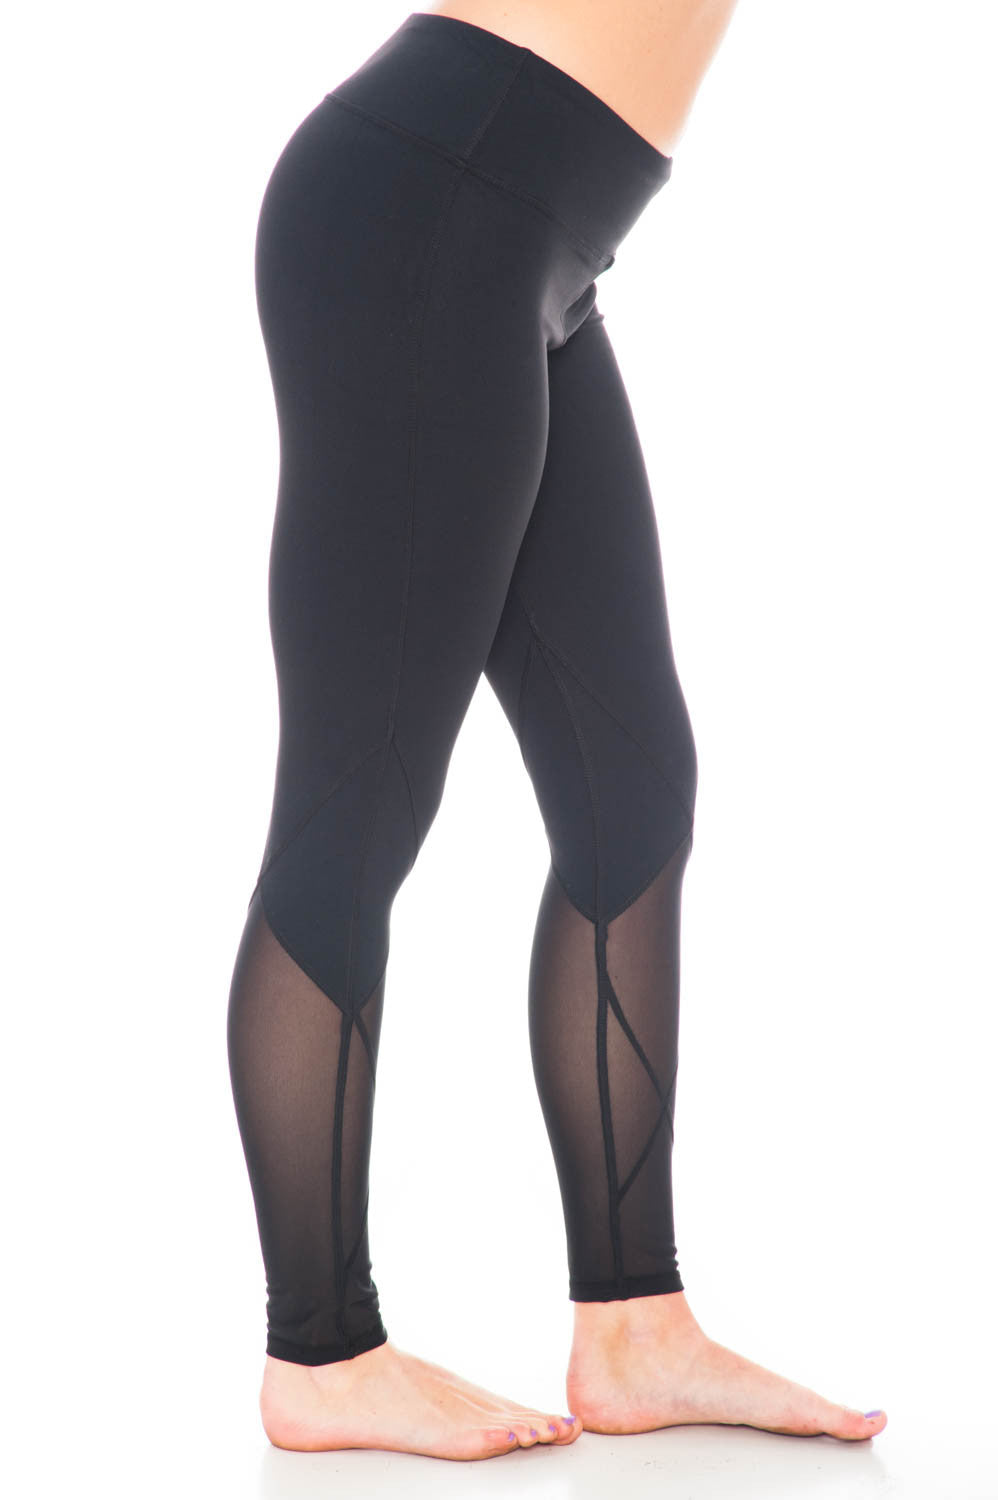 Legging - Mesh Yoga Pant by Motion by Coalition